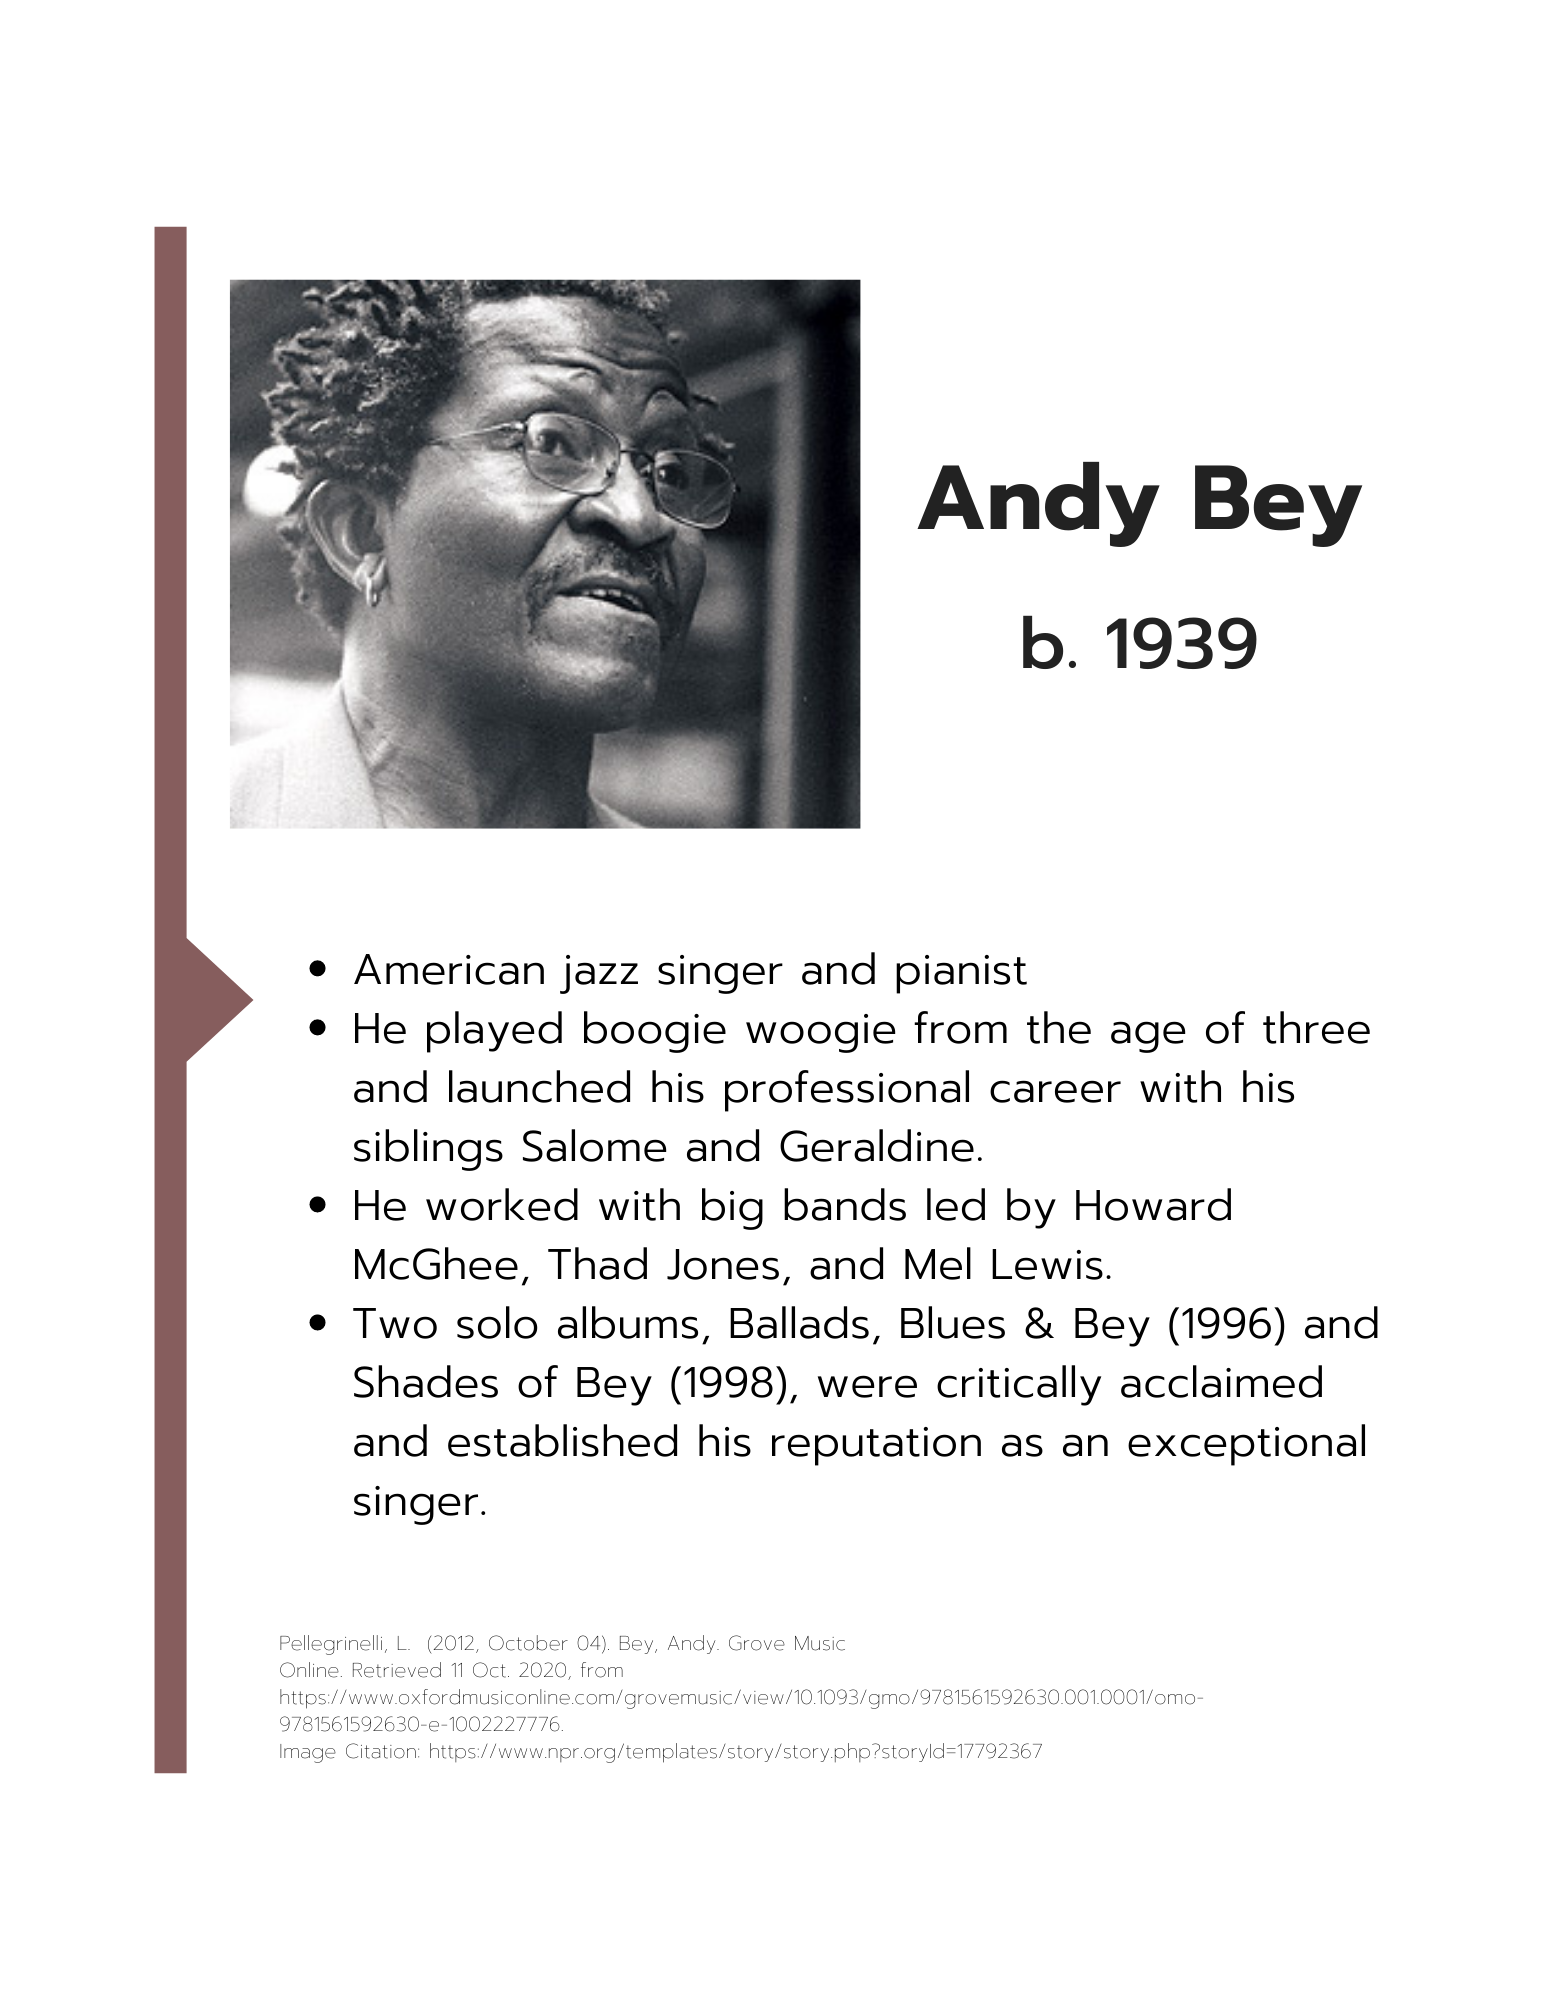 Andy Bey information sheet art